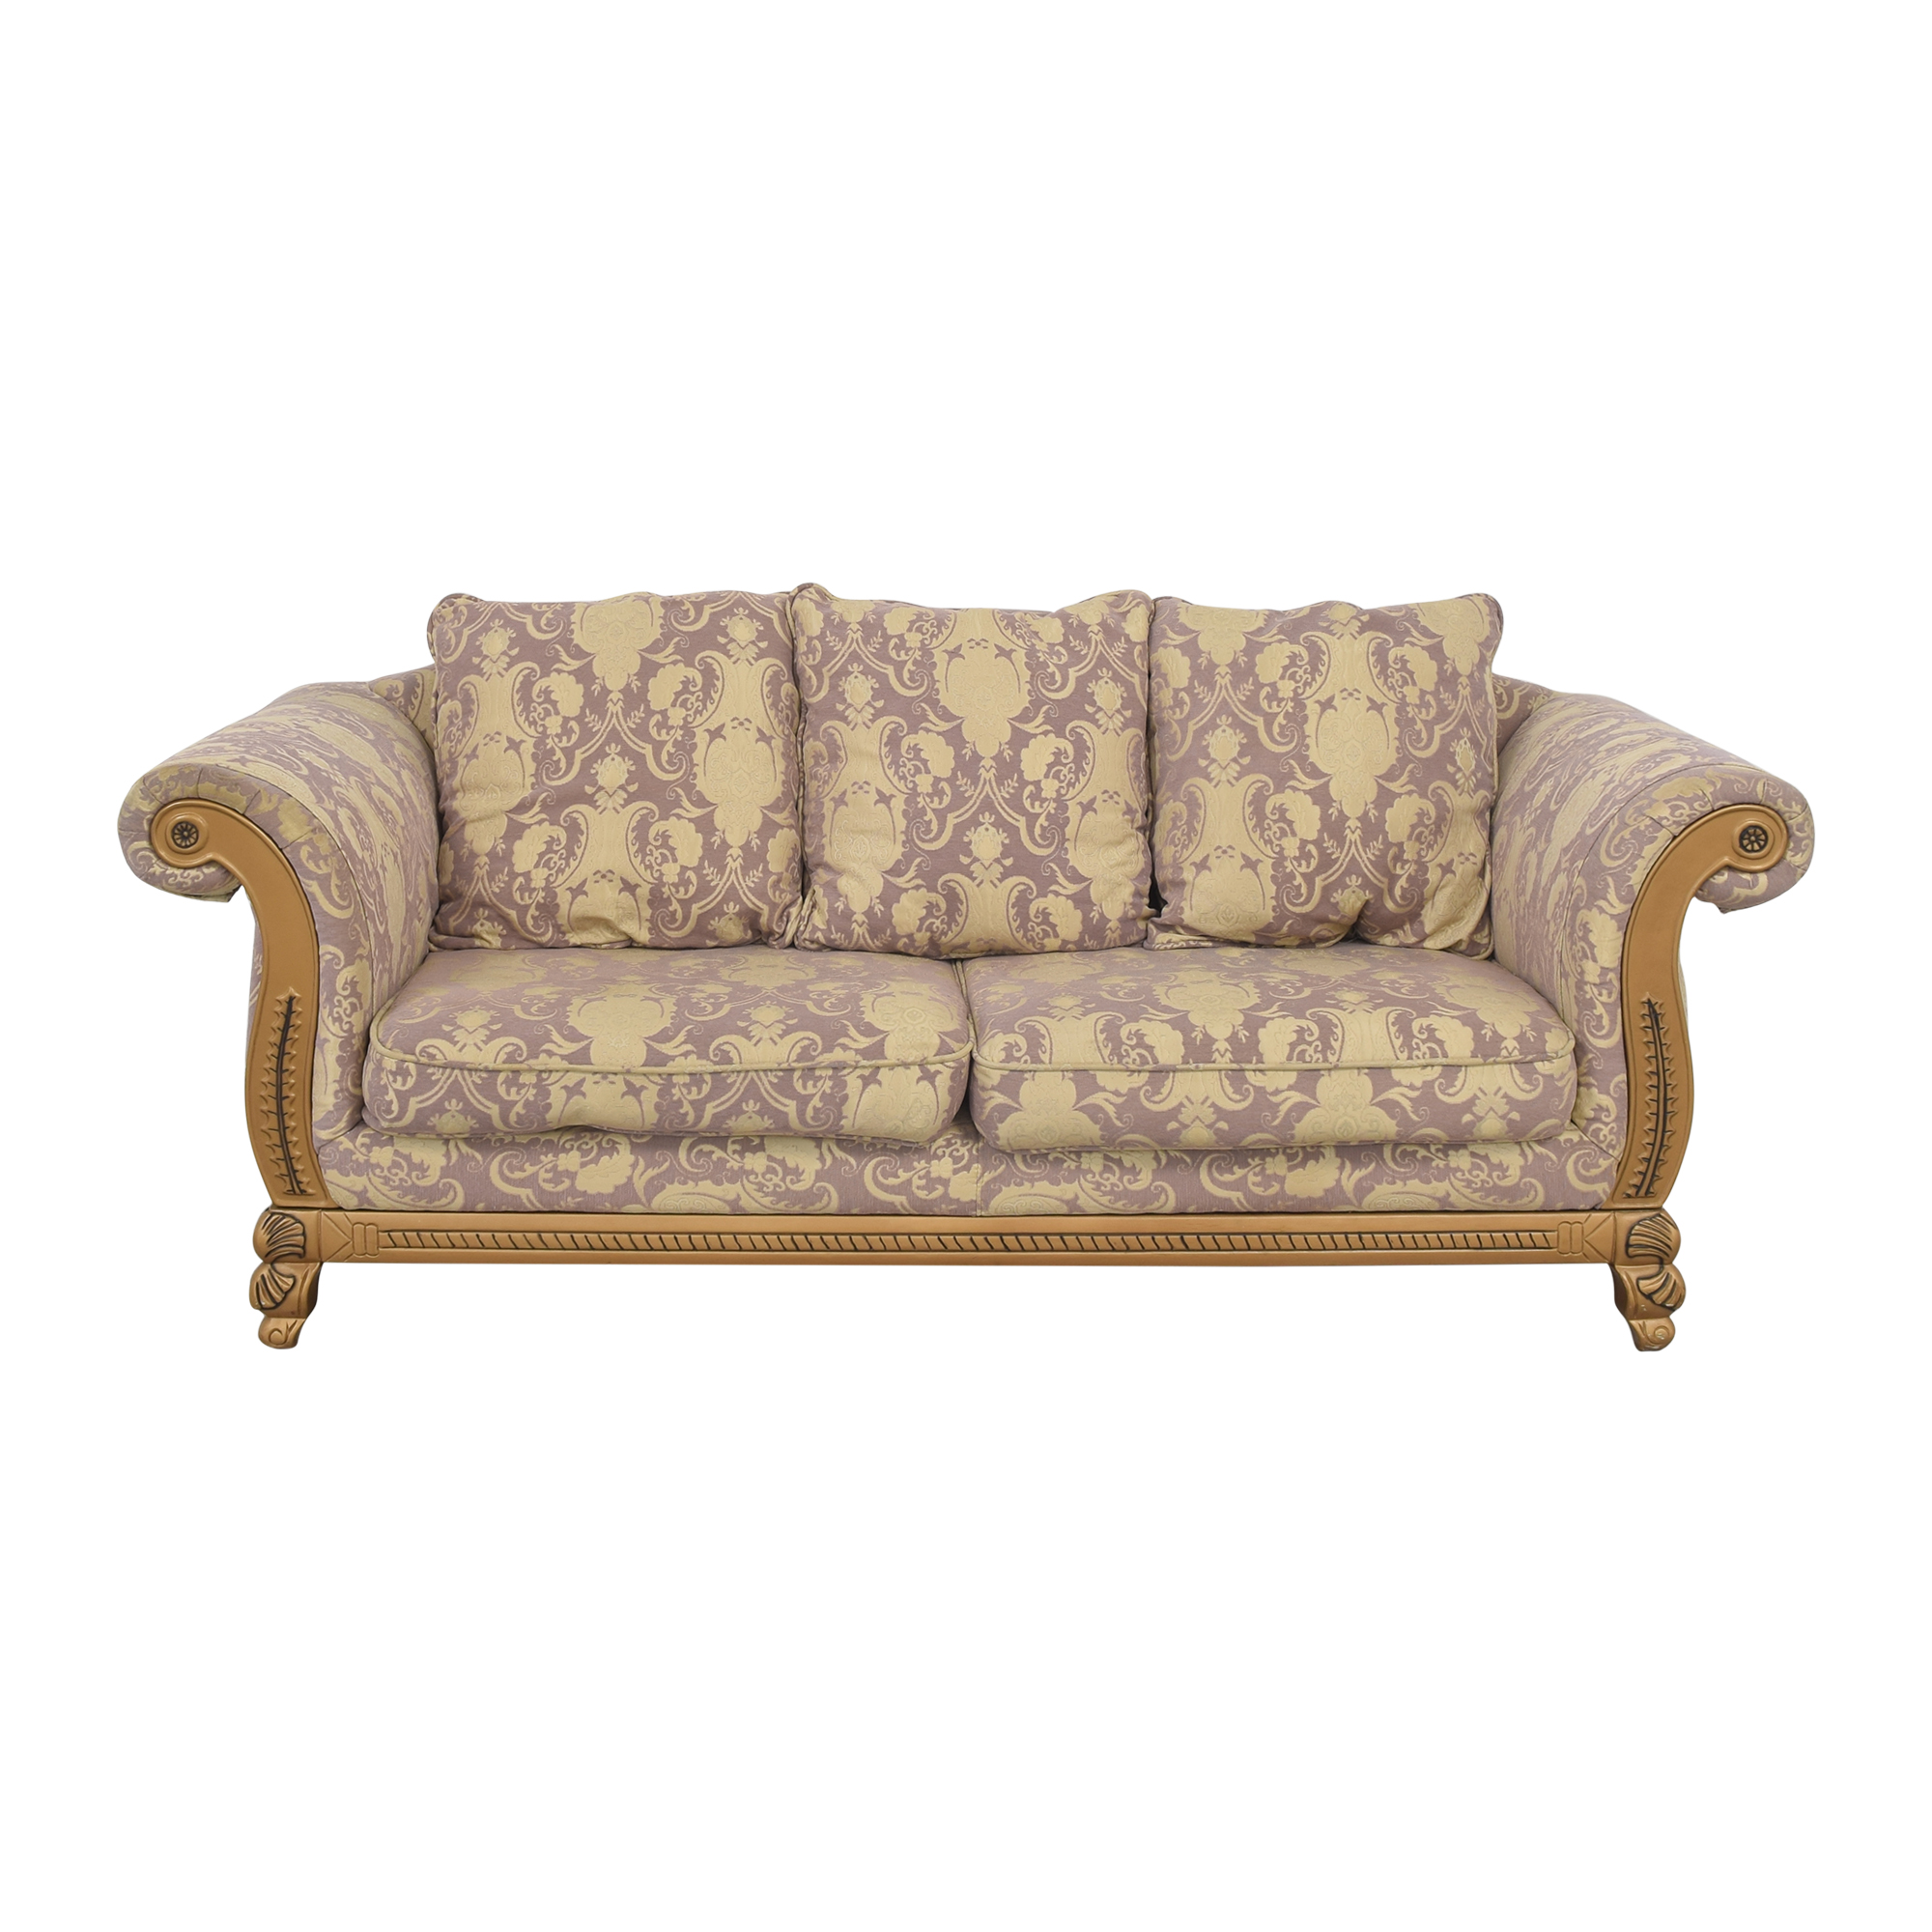 Patterned Roll Arm Sofa for sale